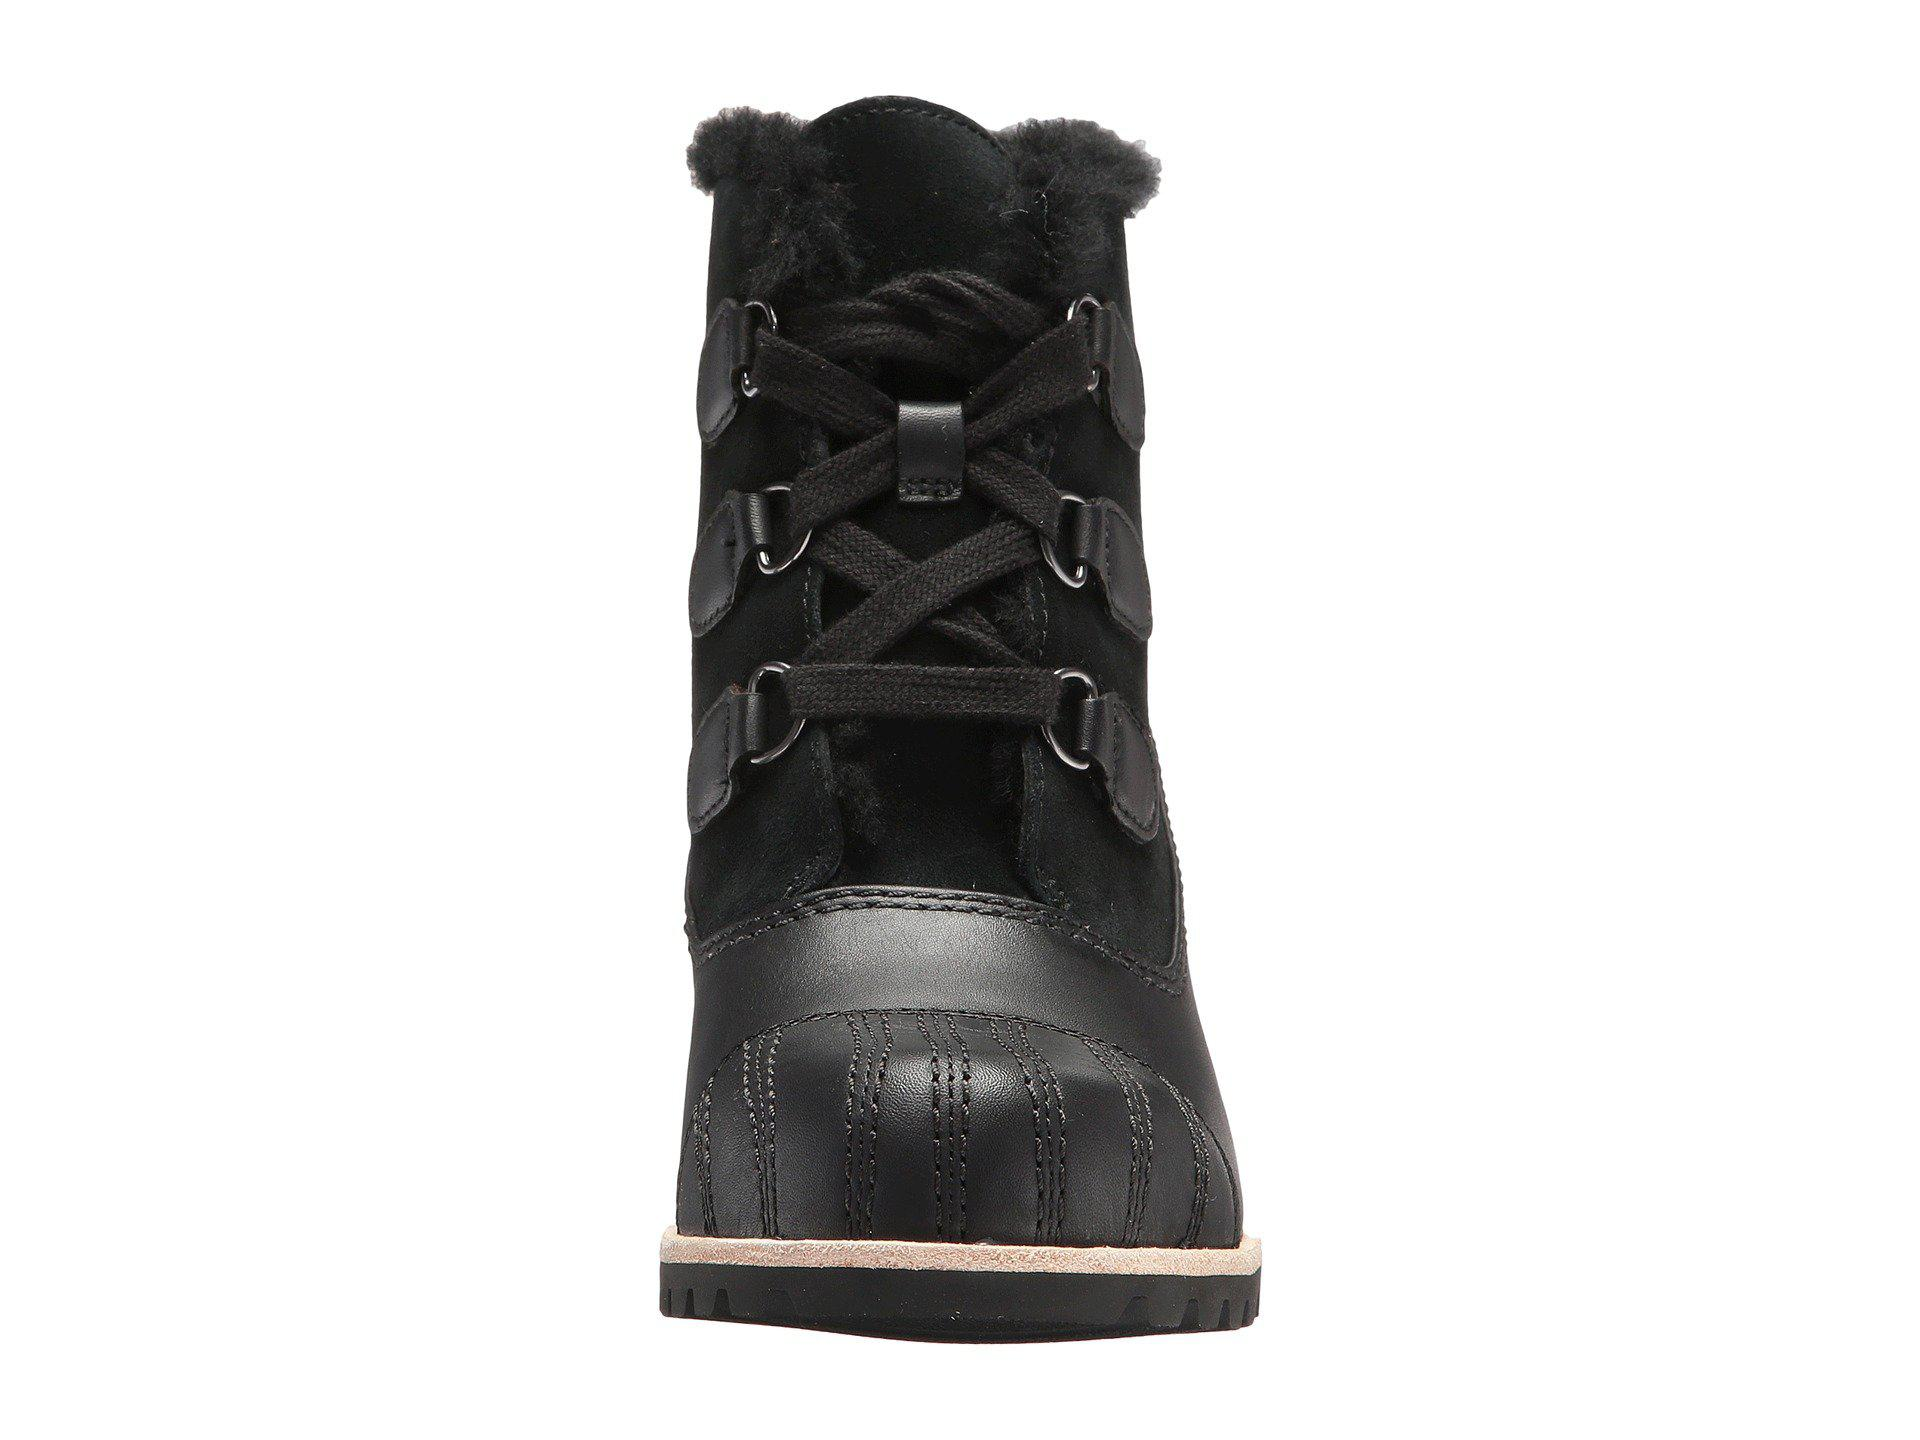 537514f29a8 Lyst - UGG Alasdair Waterproof in Black